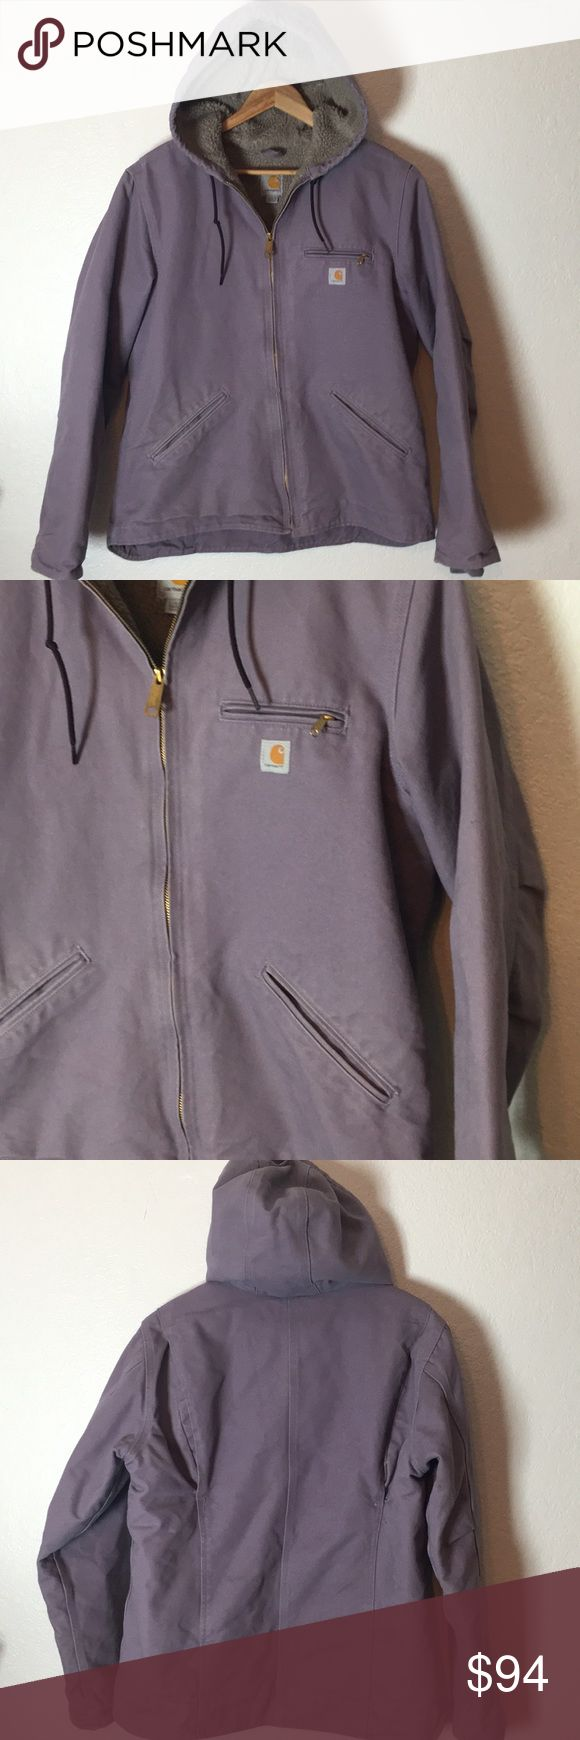 Purple Shearling Carhartt Jacket This jacket is a purple color. Has Shearling liner. Excellent used condition. Size L. Save on ✈️SHIPPING✈️and 🎁BUNDLE! I even give a discount on 3 or more regularly priced item bundles. I always accept reasonable offers with the offer button! 🚫❌Lowball offers please! Carhartt Jackets & Coats